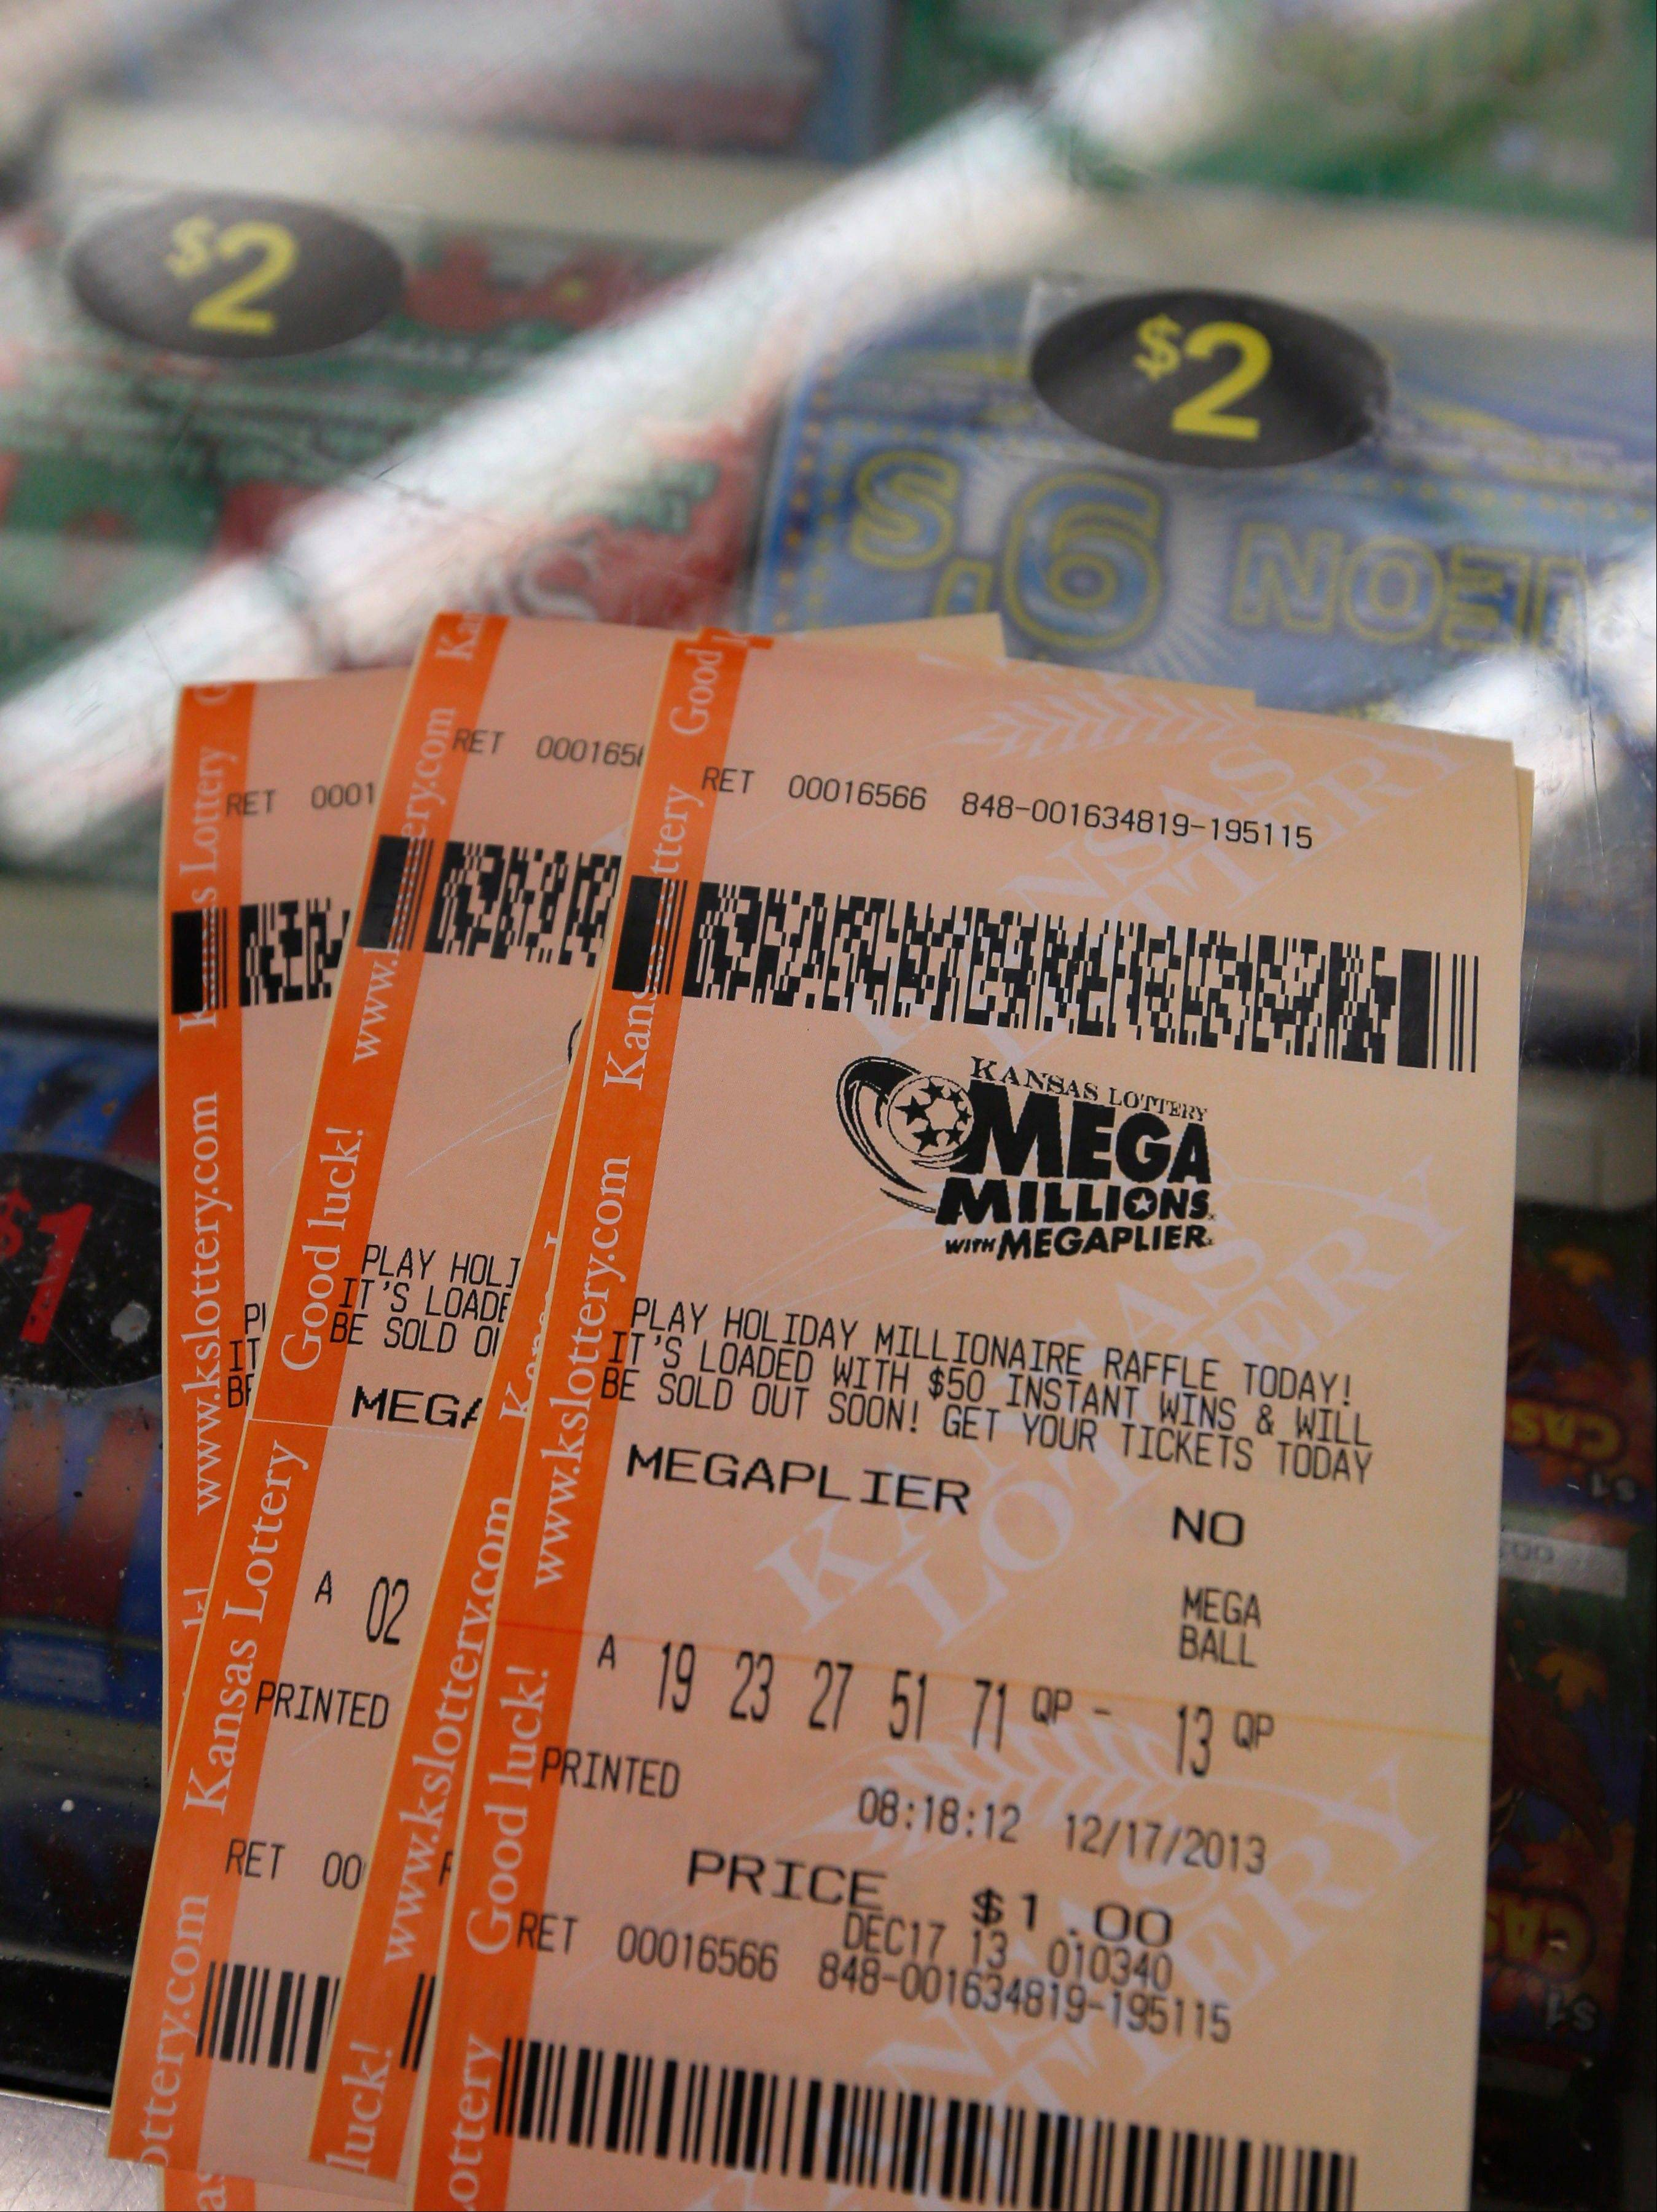 The Mega Millions estimated jackpot has soared to $636 million, making it the second largest jackpot in U.S. history.